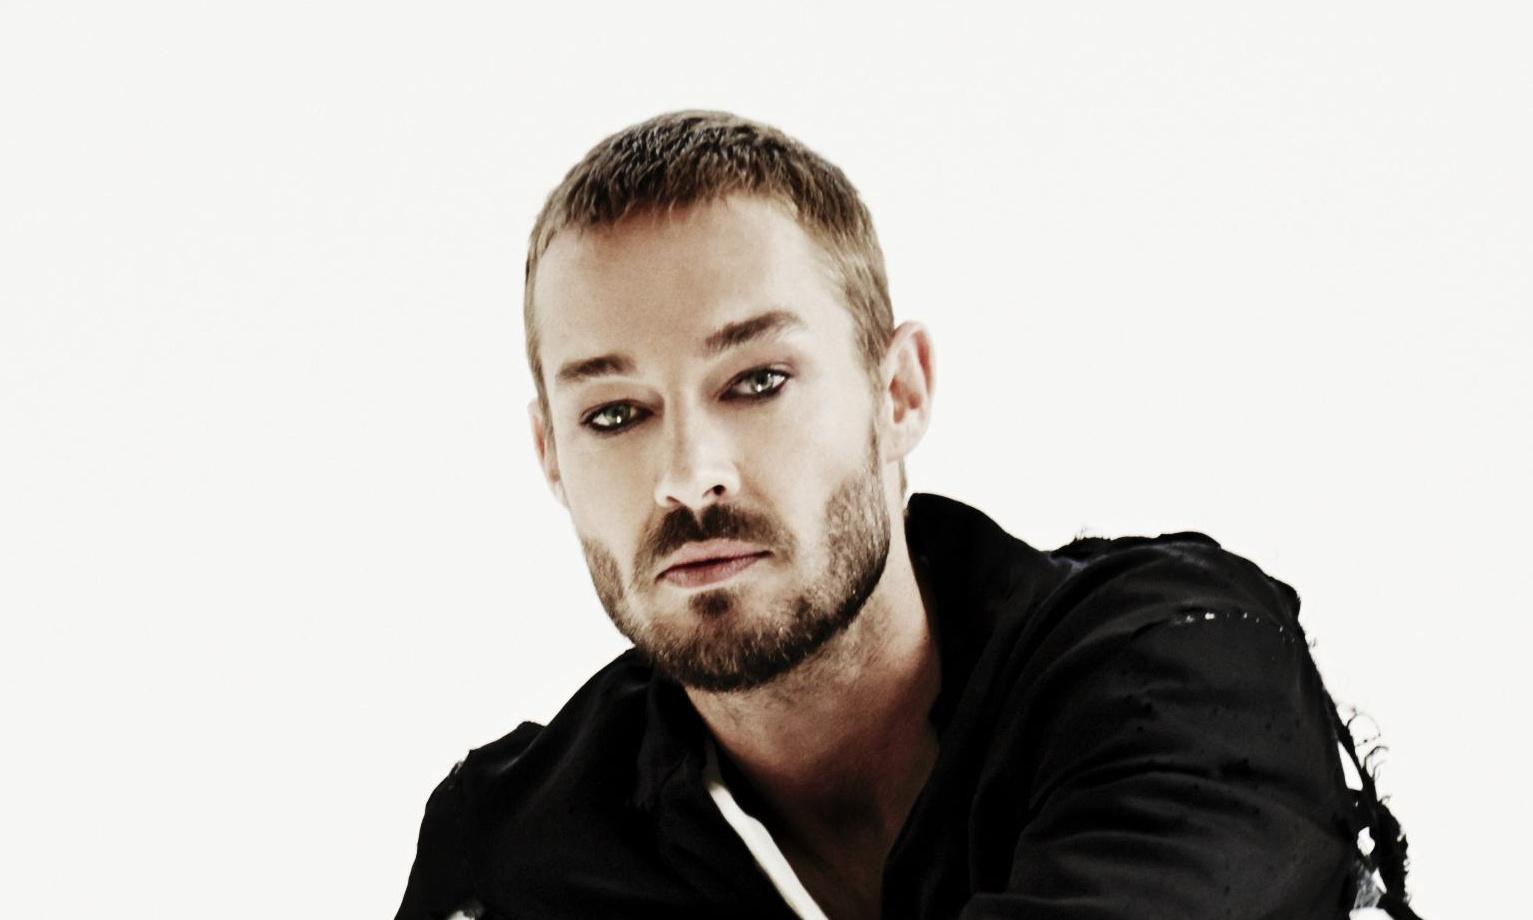 Daniel Johns sues News Corp for defamation over front-page brothel story